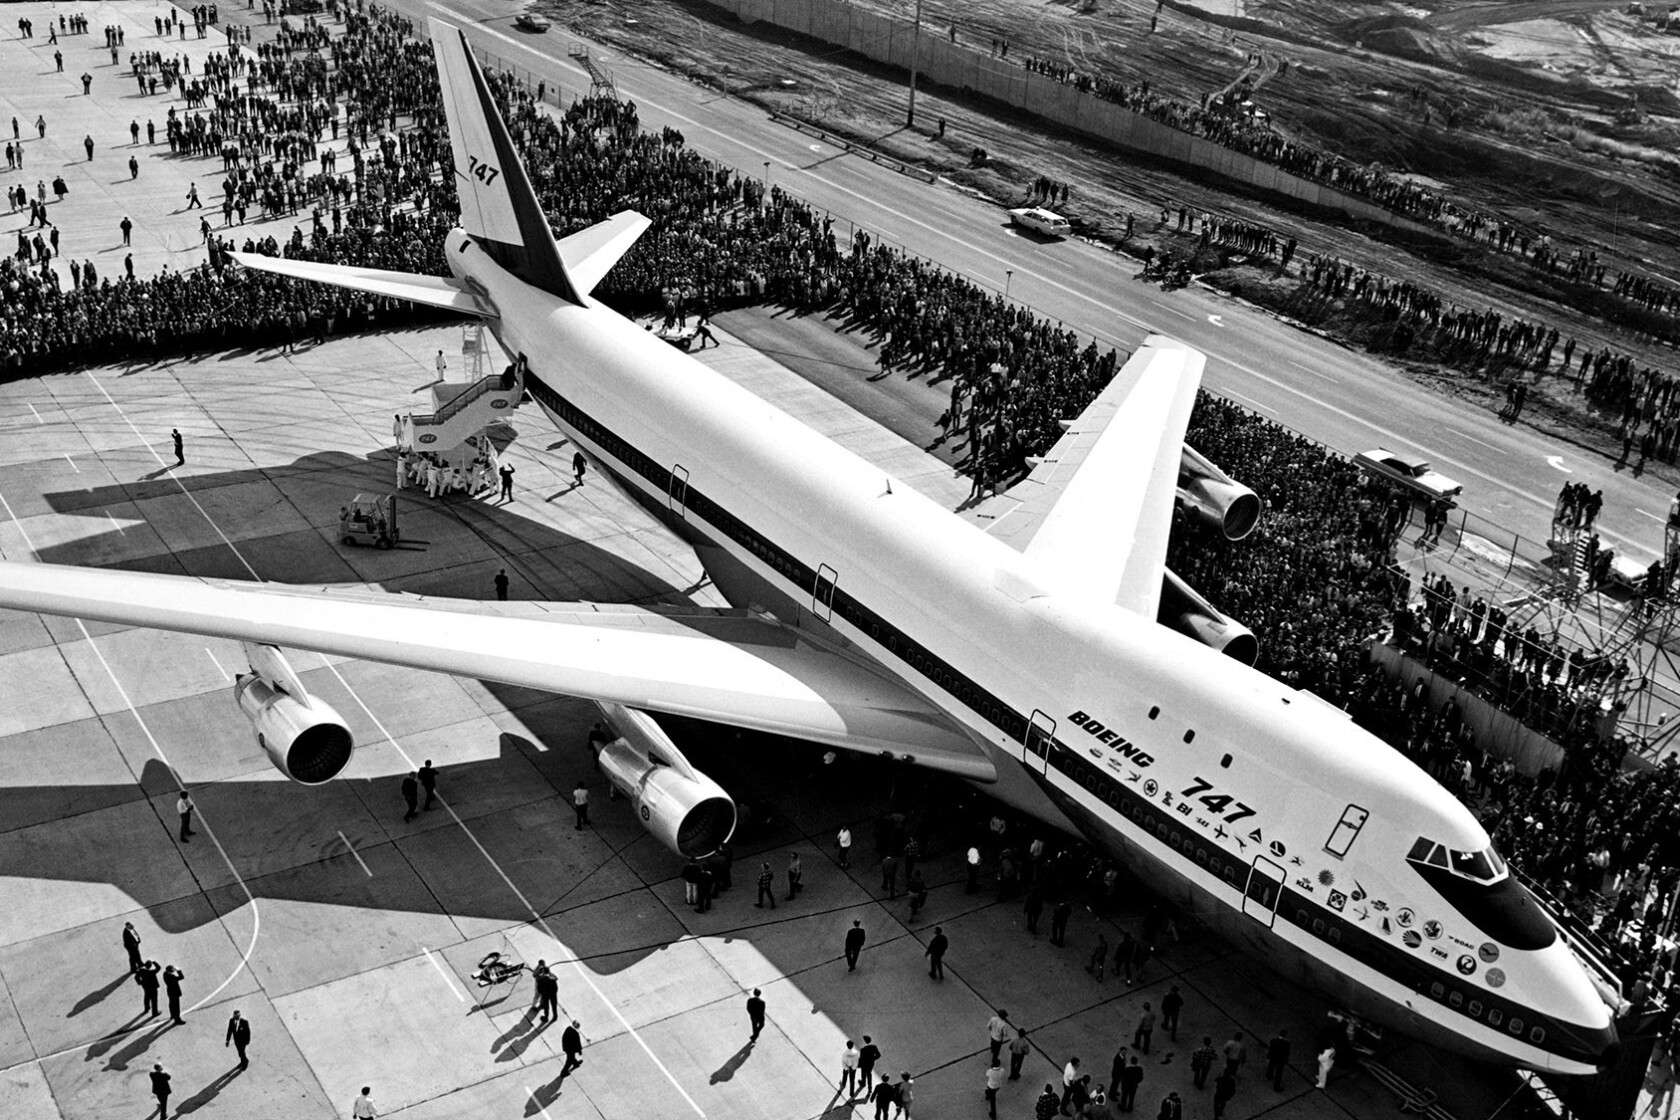 Once the queen of the skies, the 747 will soon be just a